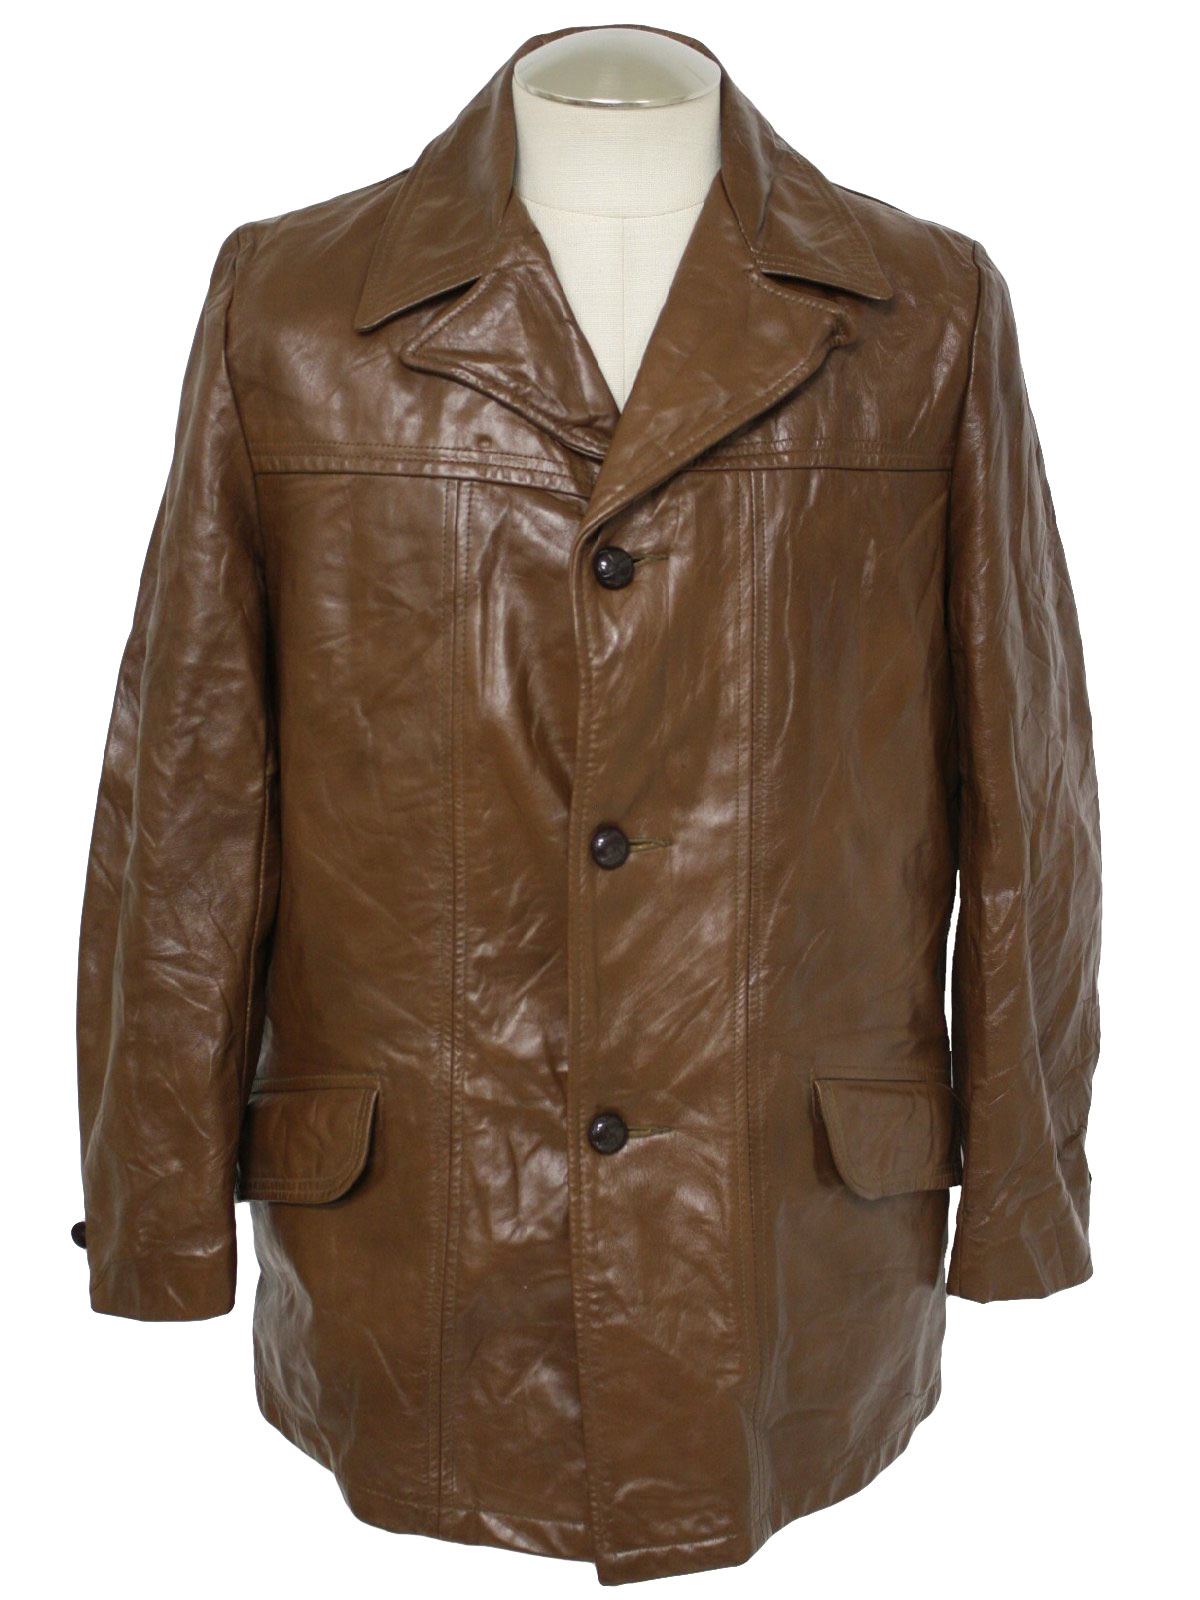 1970's Made in USA Mens Leather Car Coat Style Jacket $68.00 Not in stock. Item No. 176396